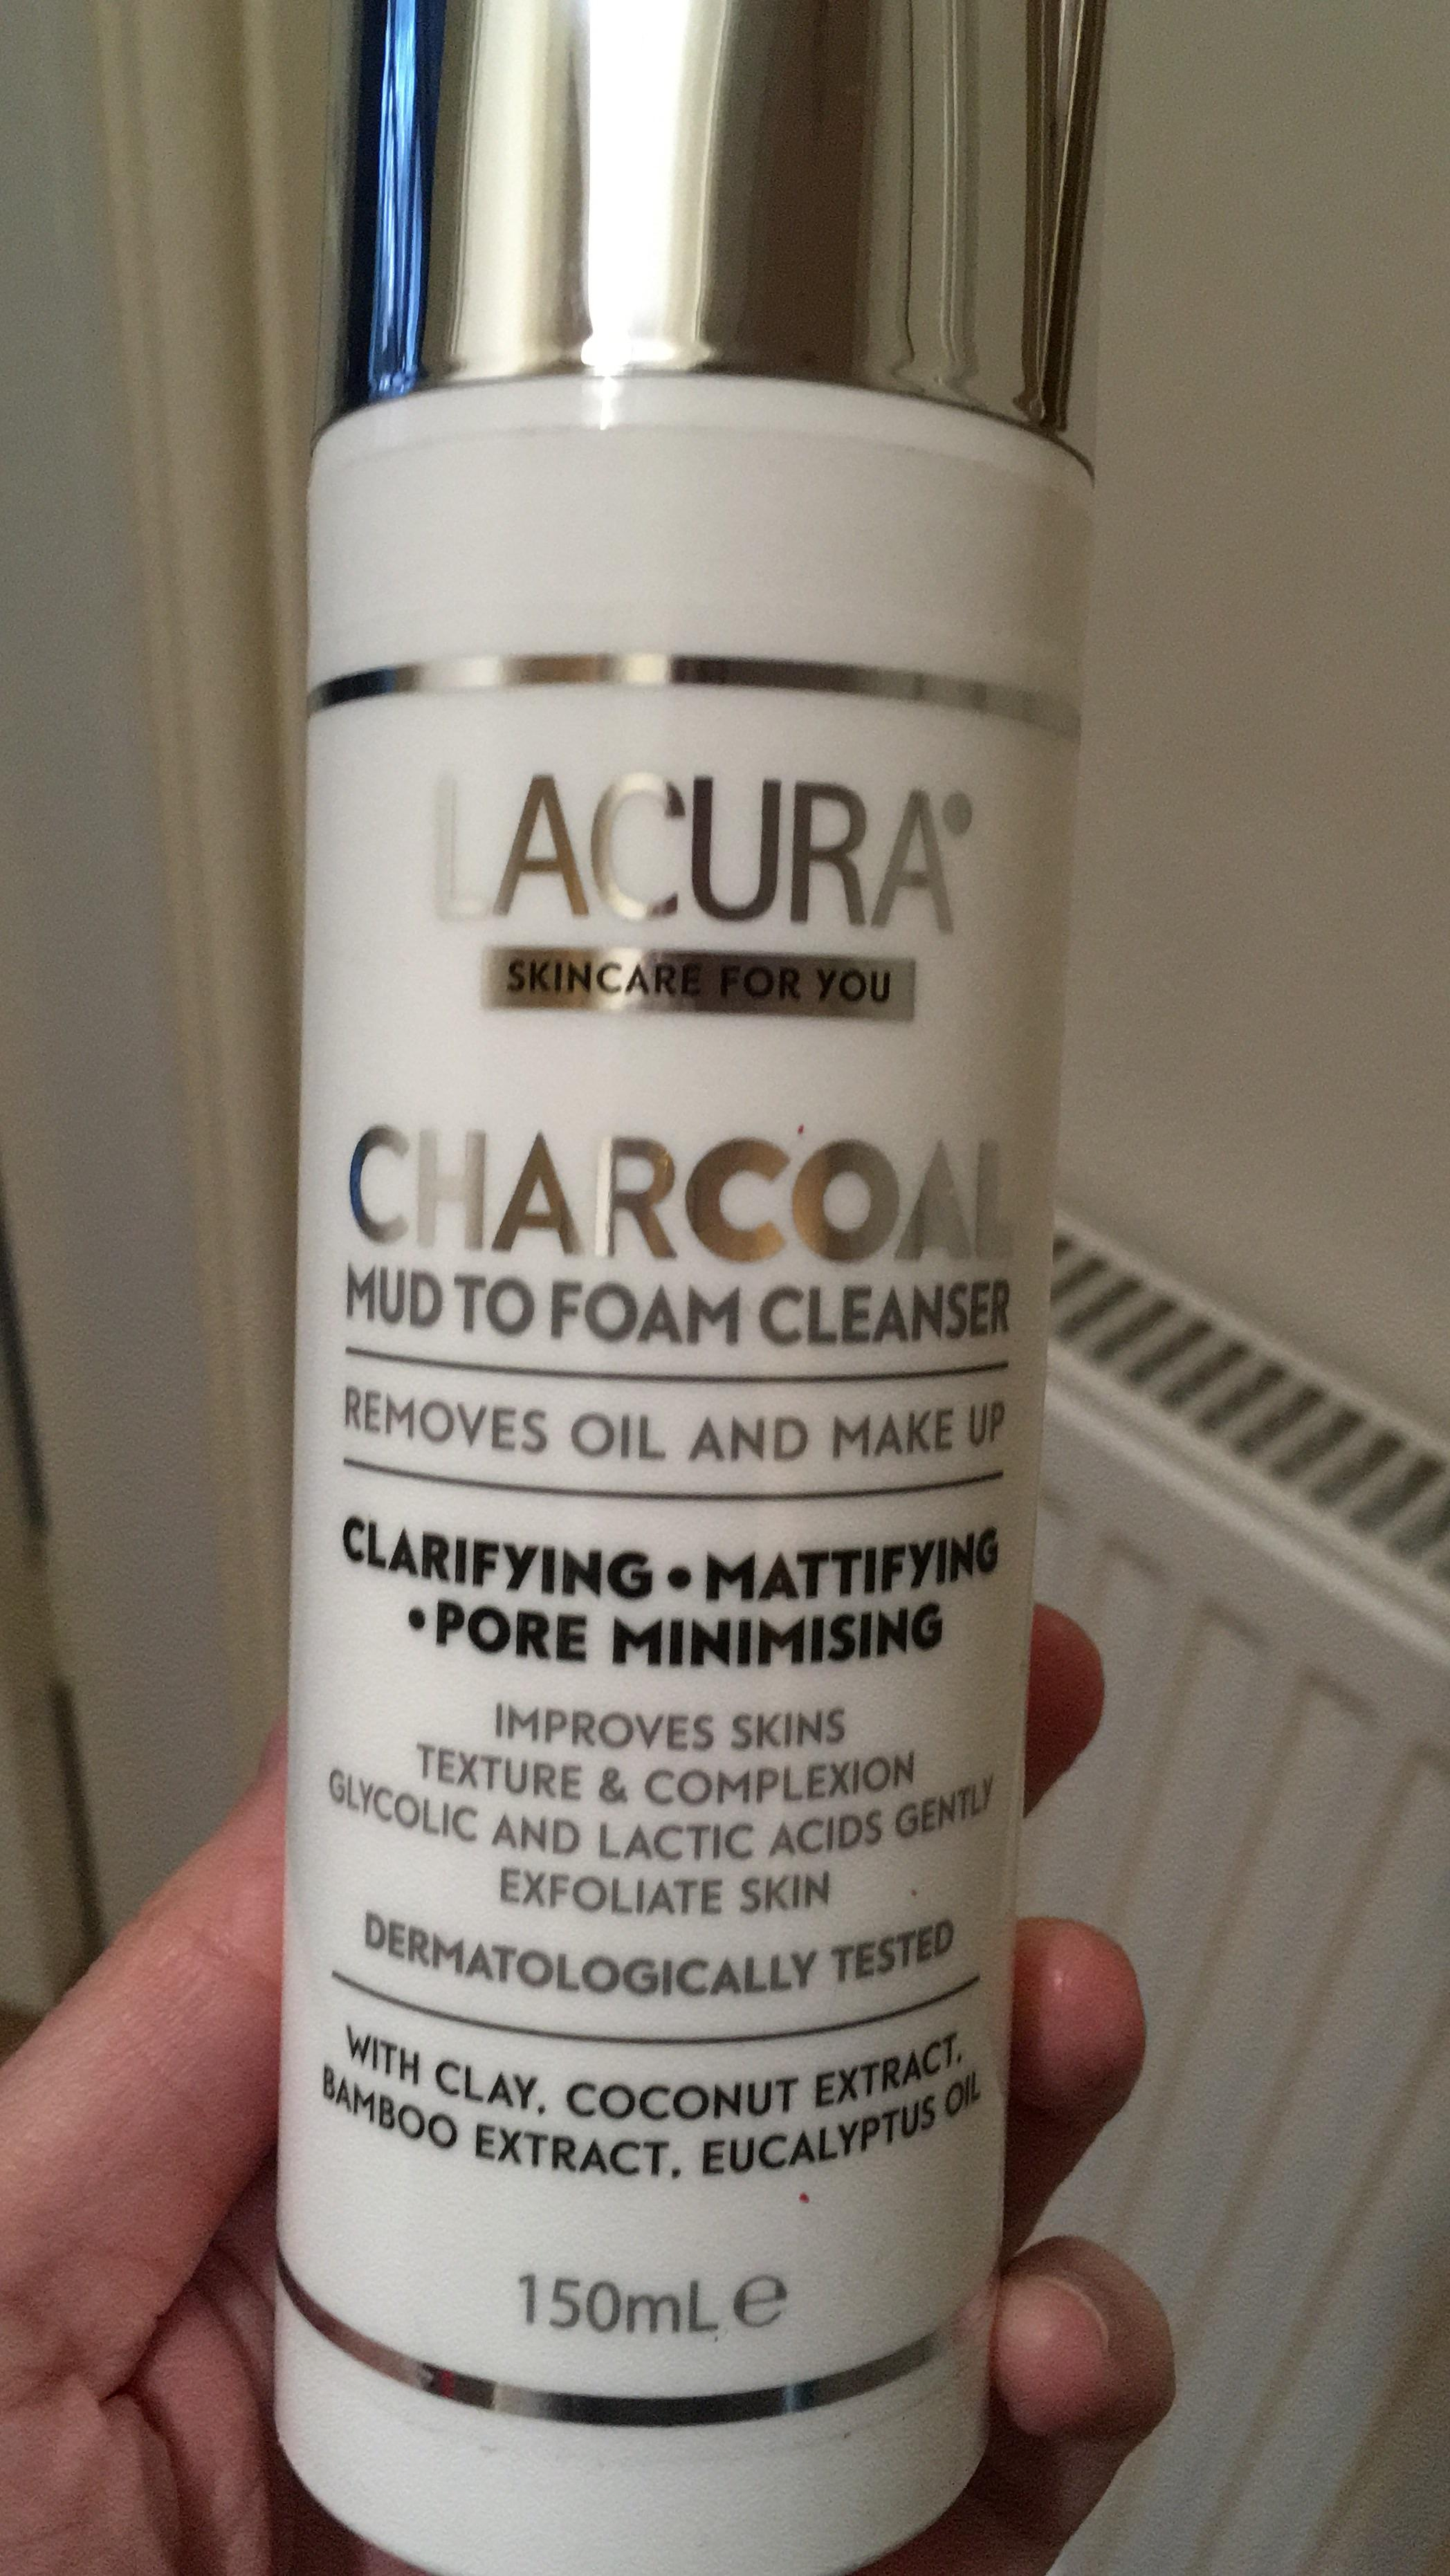 Aldi Shampoo Range Haul On The Aldi Hype Purchased This Charcoal Mud To Foam Face